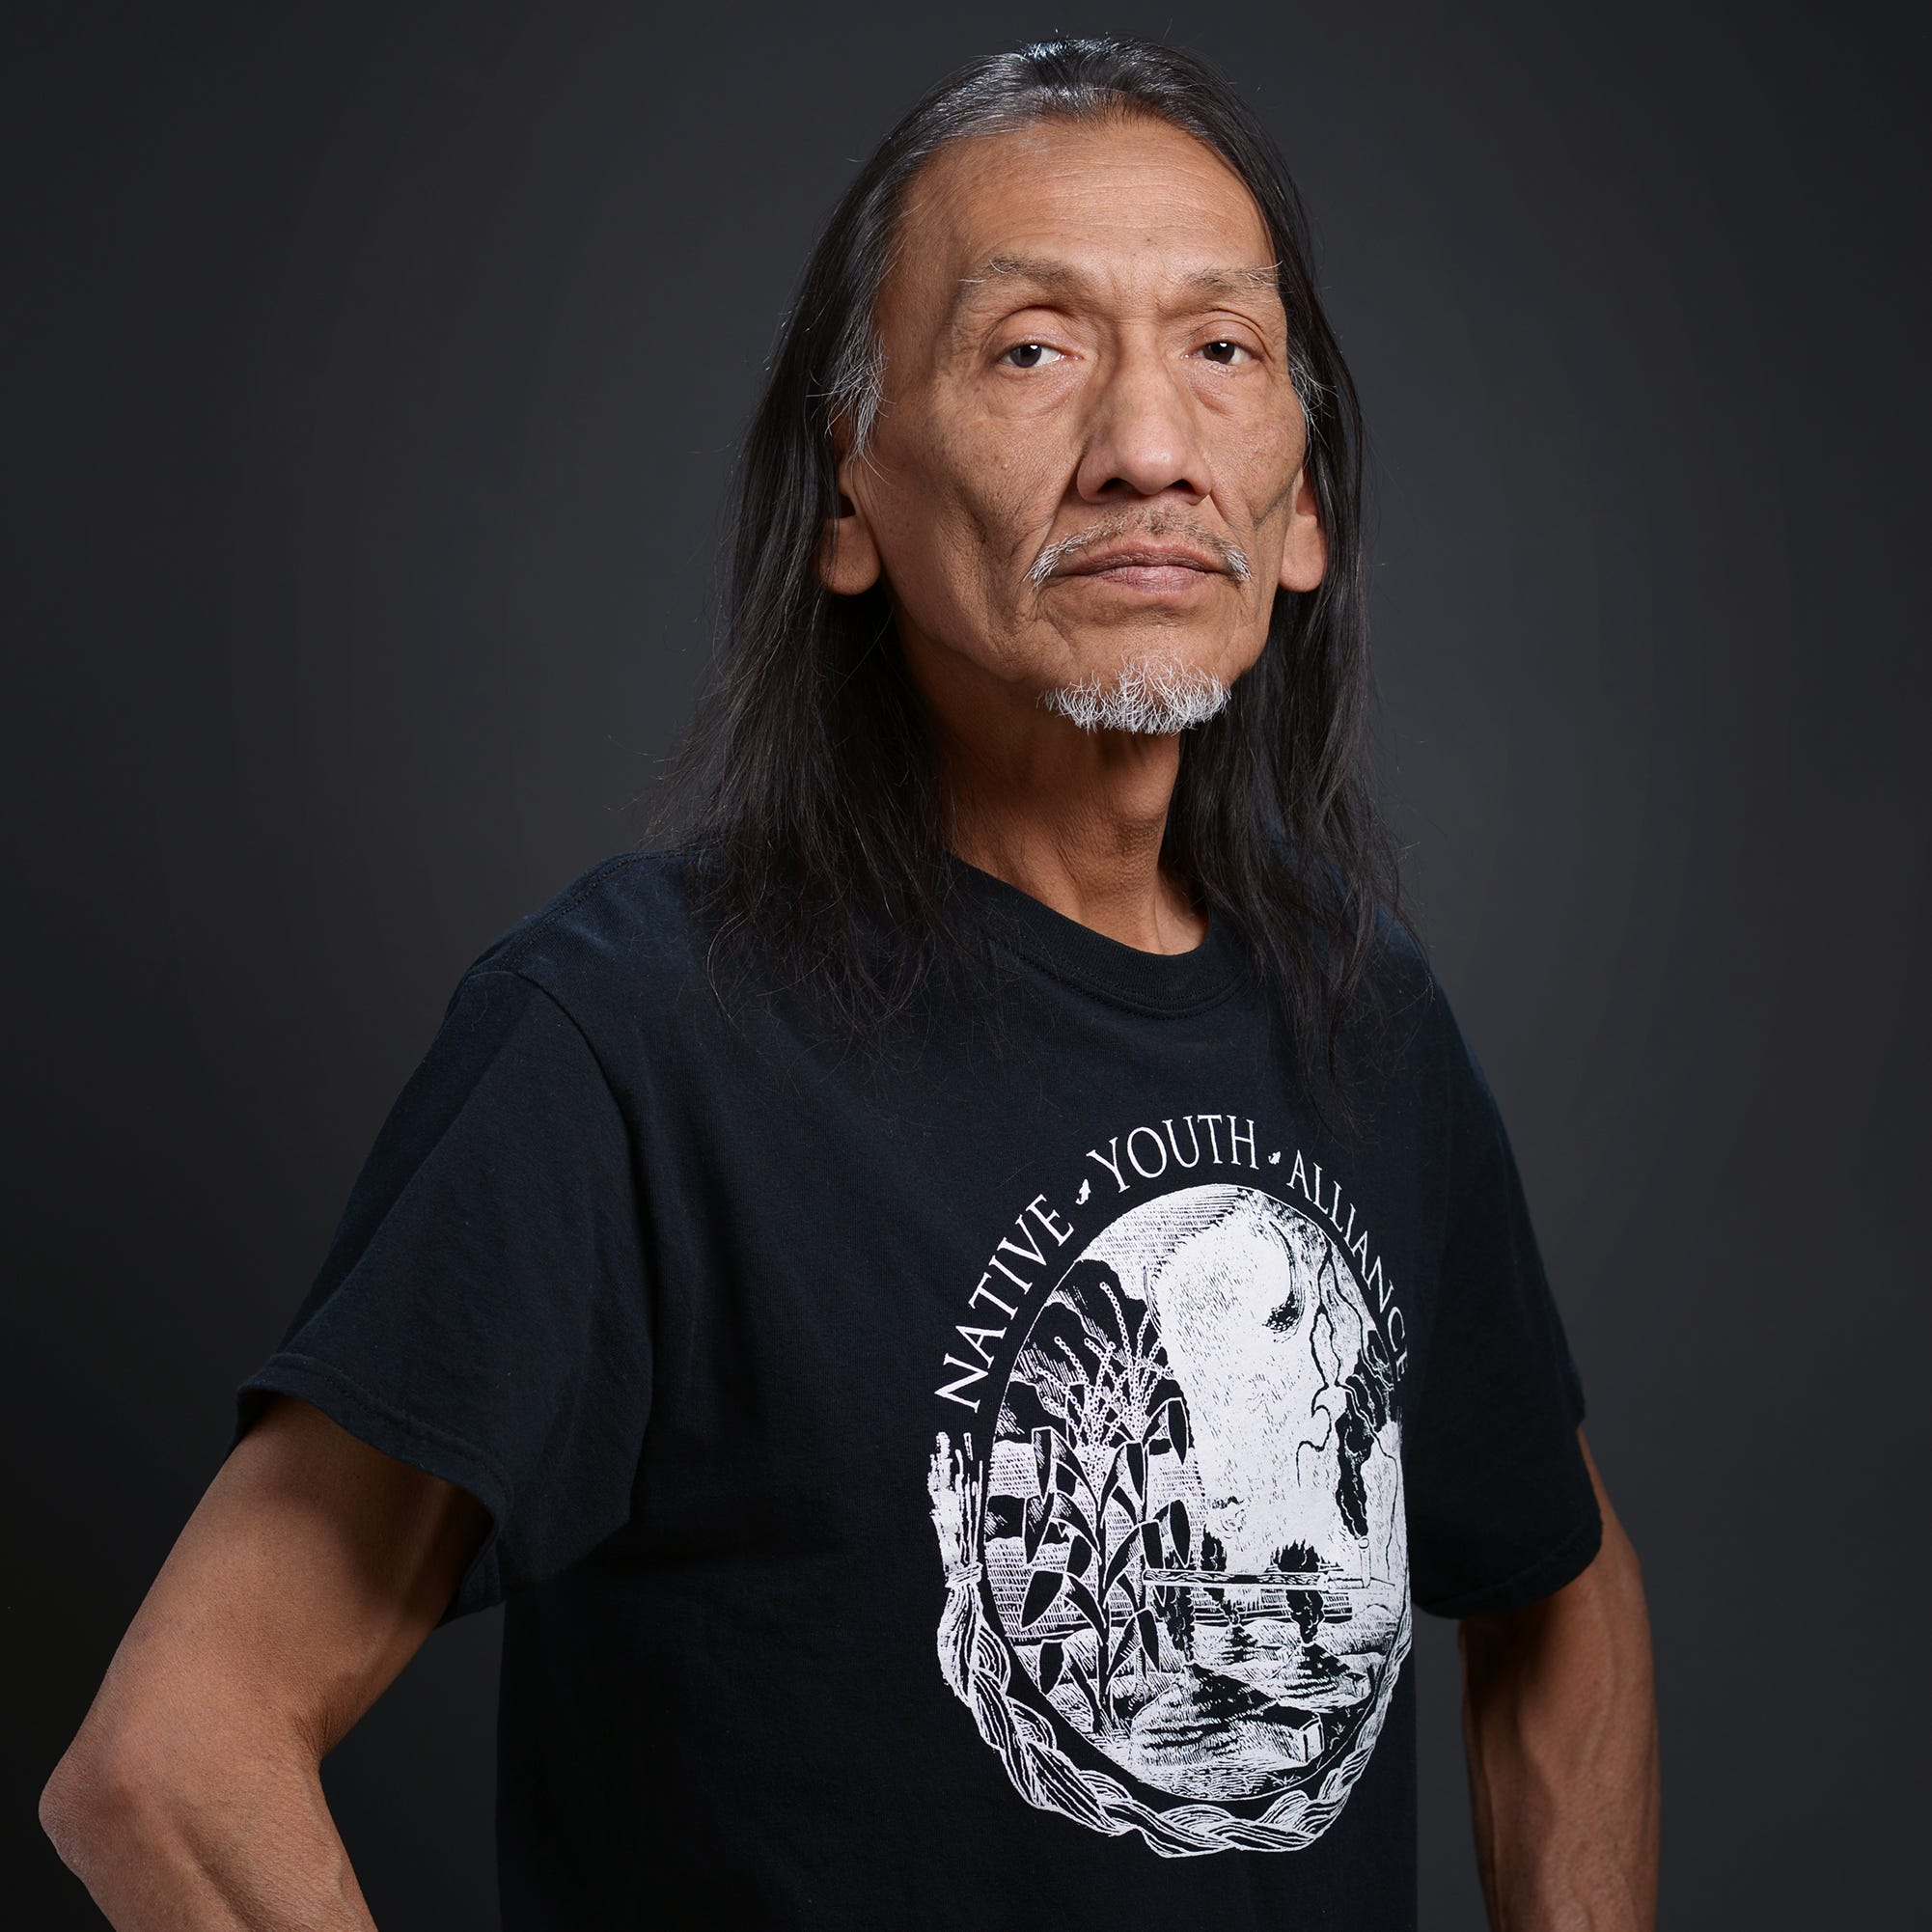 Nathan Phillips rejects Jeff Ruby's offer to 'break bread' with CovCath students